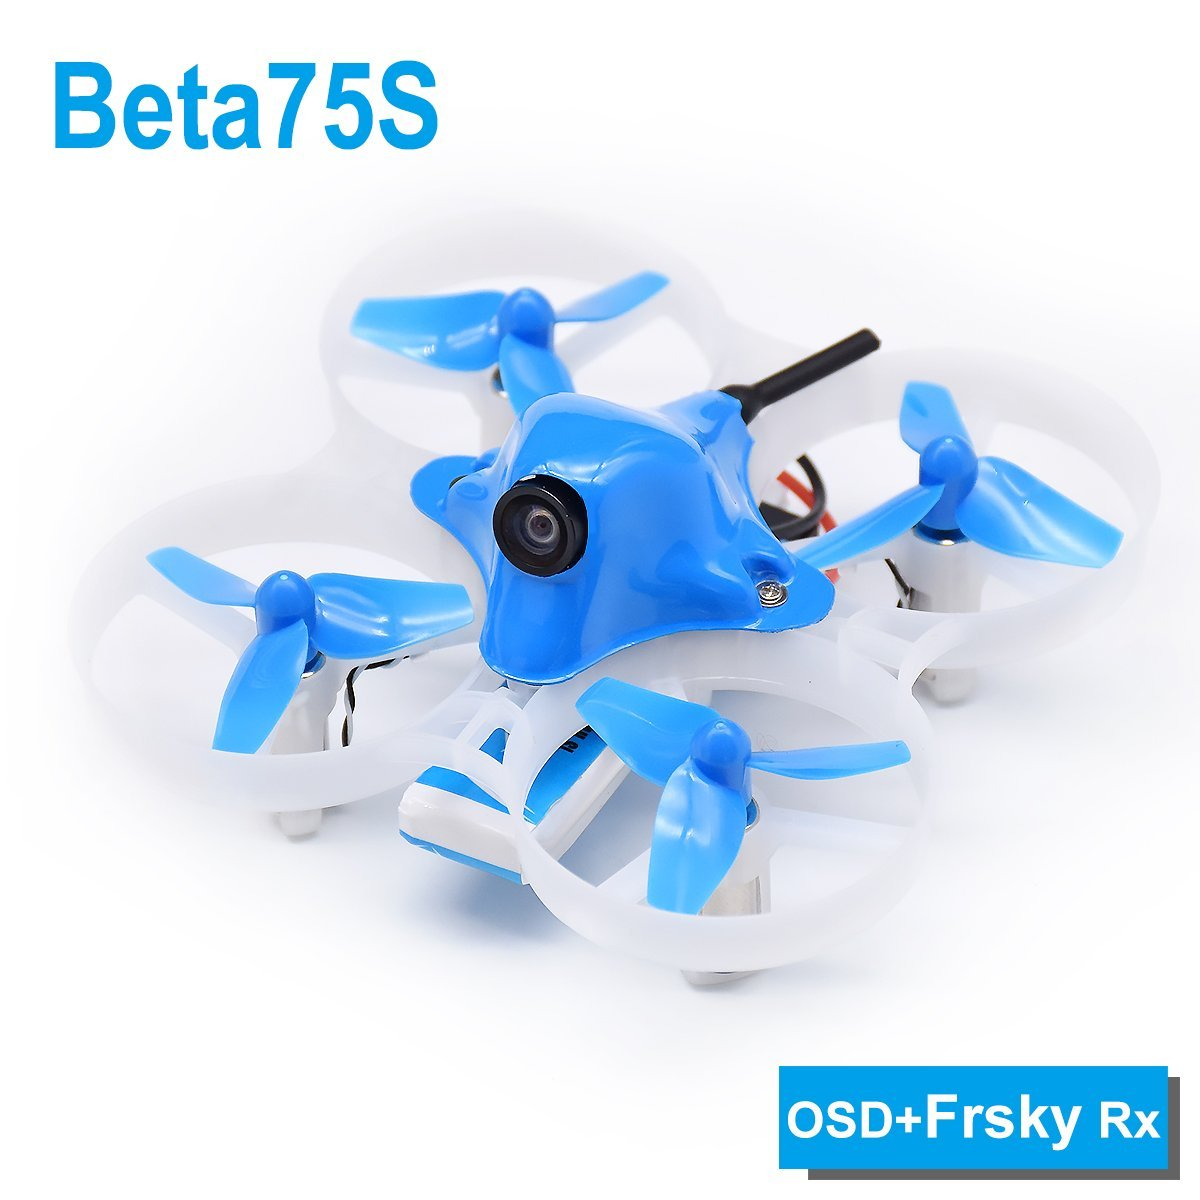 BETAFPV Beta75S BNF Tiny Whoop Quadcopter Frsky Receiver with OSD for 8X20 Motor радиоуправляемый квадрокоптер betafpv beta65s whoop quad frsky rx bnf